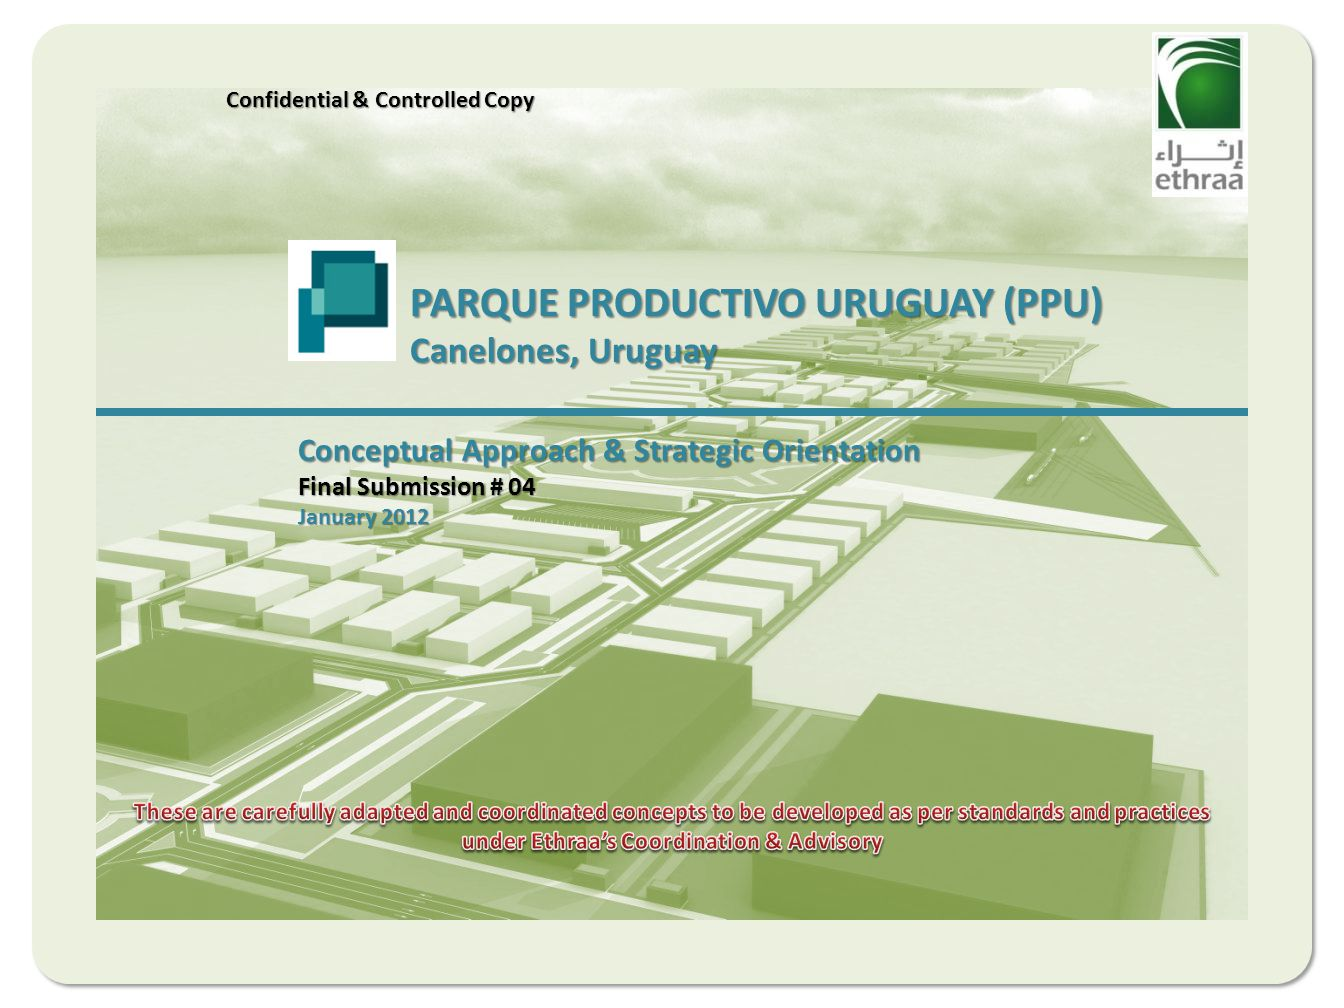 PARQUE PRODUCTIVO URUGUAY (PPU) Canelones, Uruguay Conceptual Approach & Strategic Orientation Final Submission # 04 January 2012 Confidential & Controlled Copy